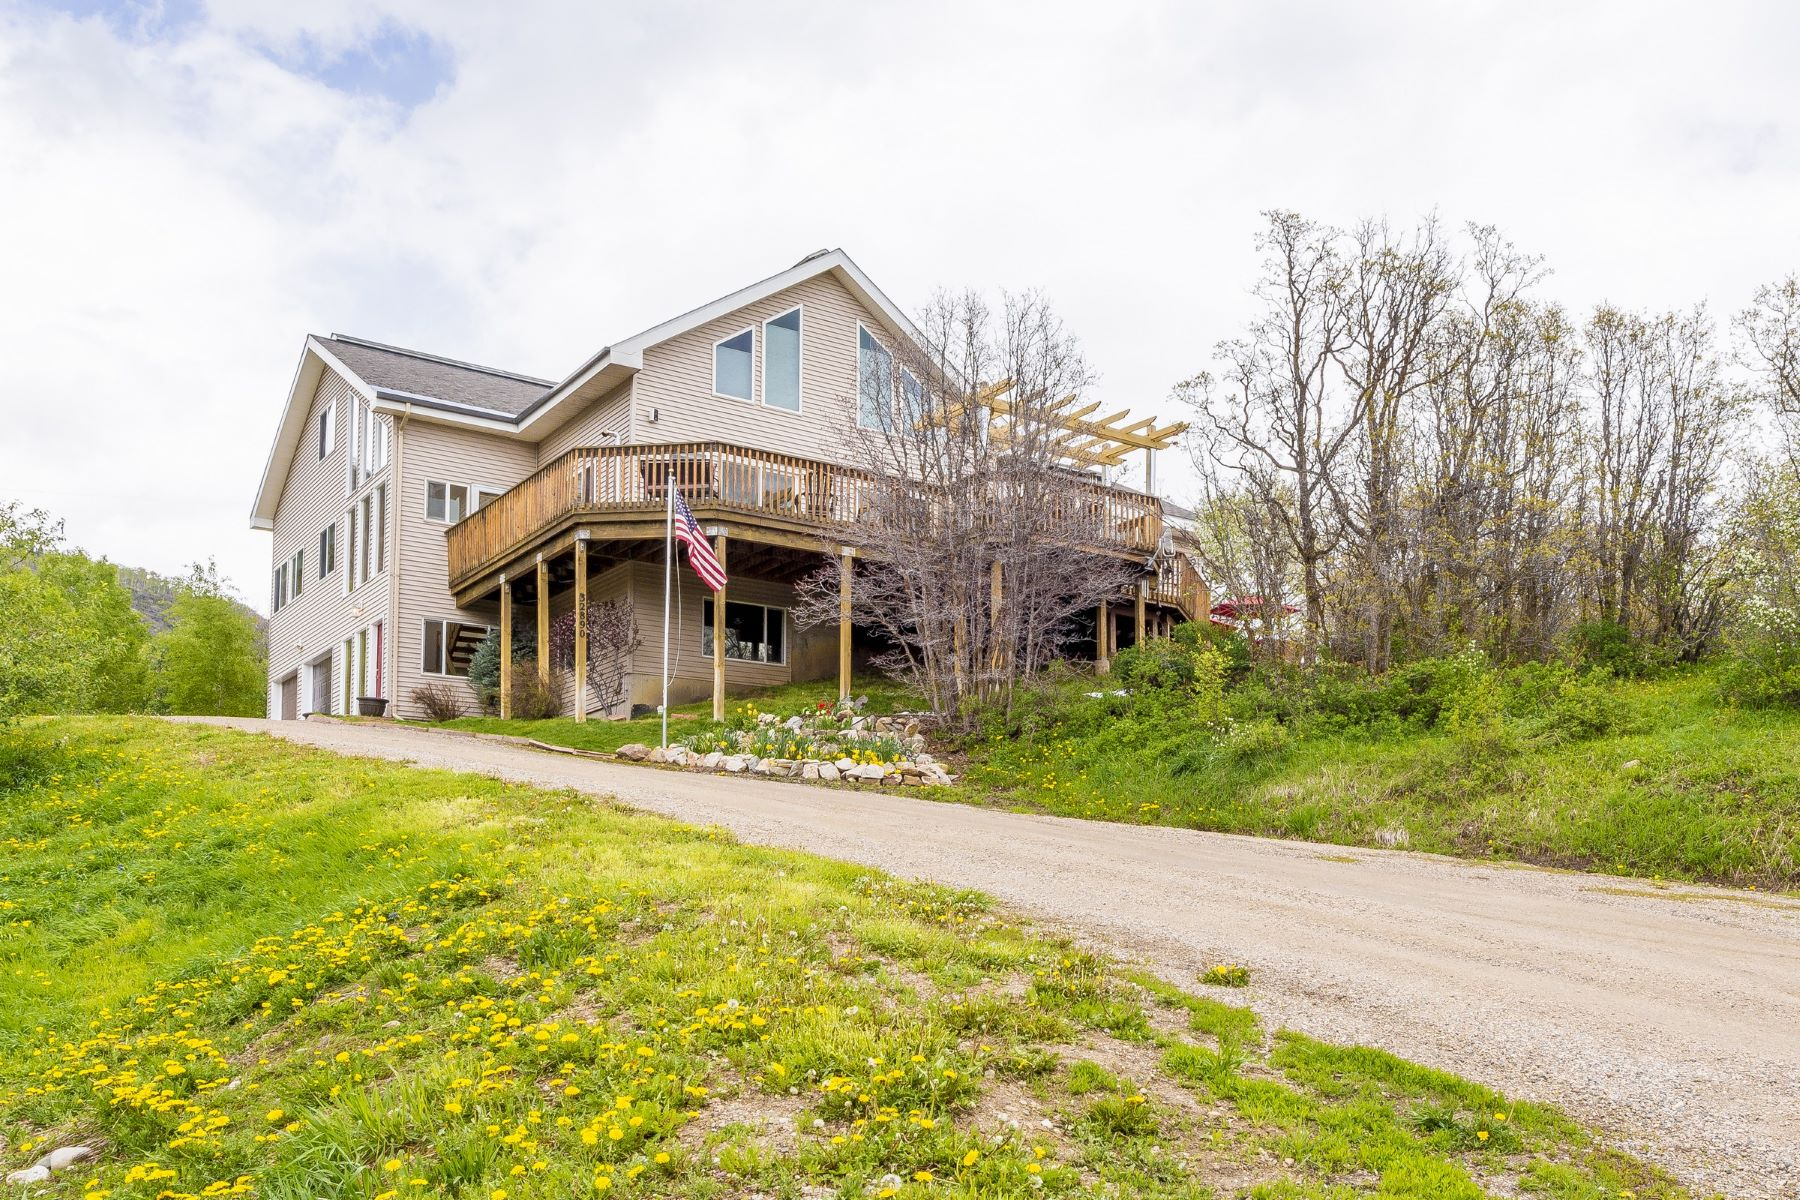 Single Family Home for Sale at Exceptional Country Home 32890 S Elk Dr Steamboat Springs, Colorado, 80487 United States